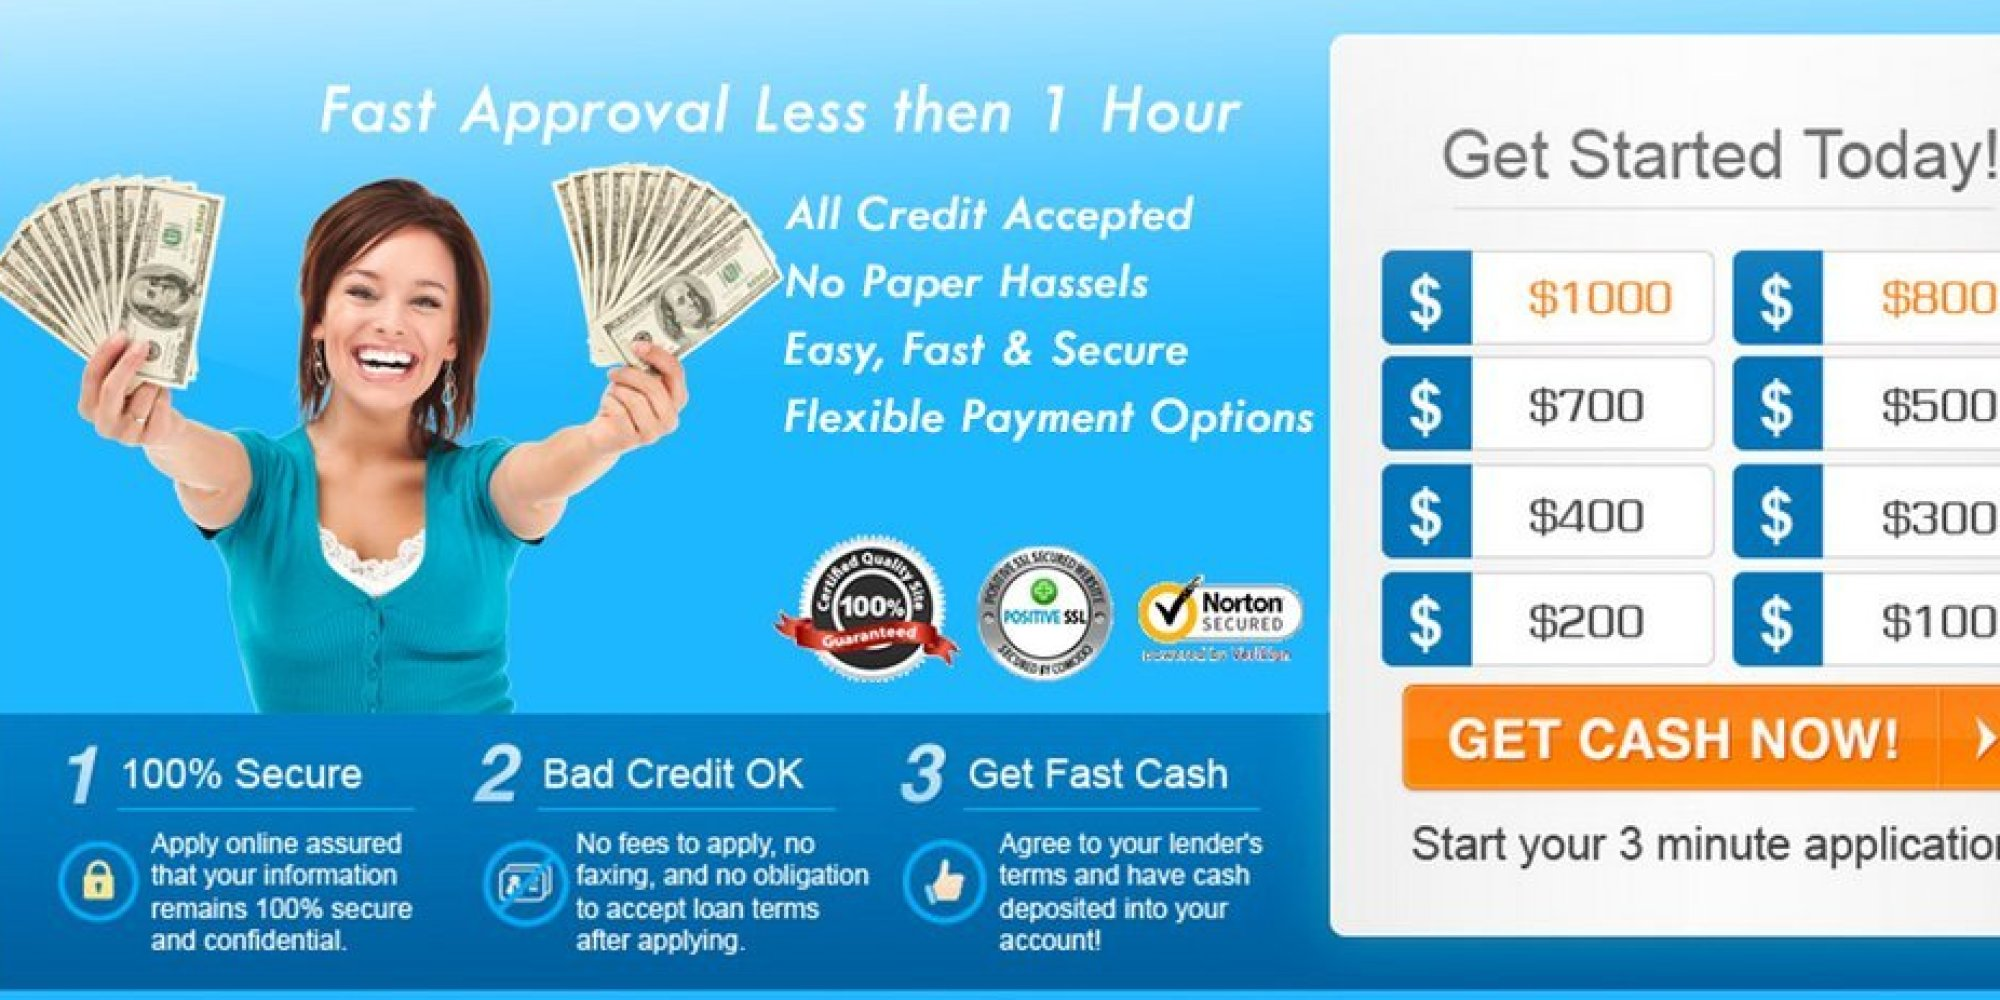 Bad Credit Loans! Fast & Secure!